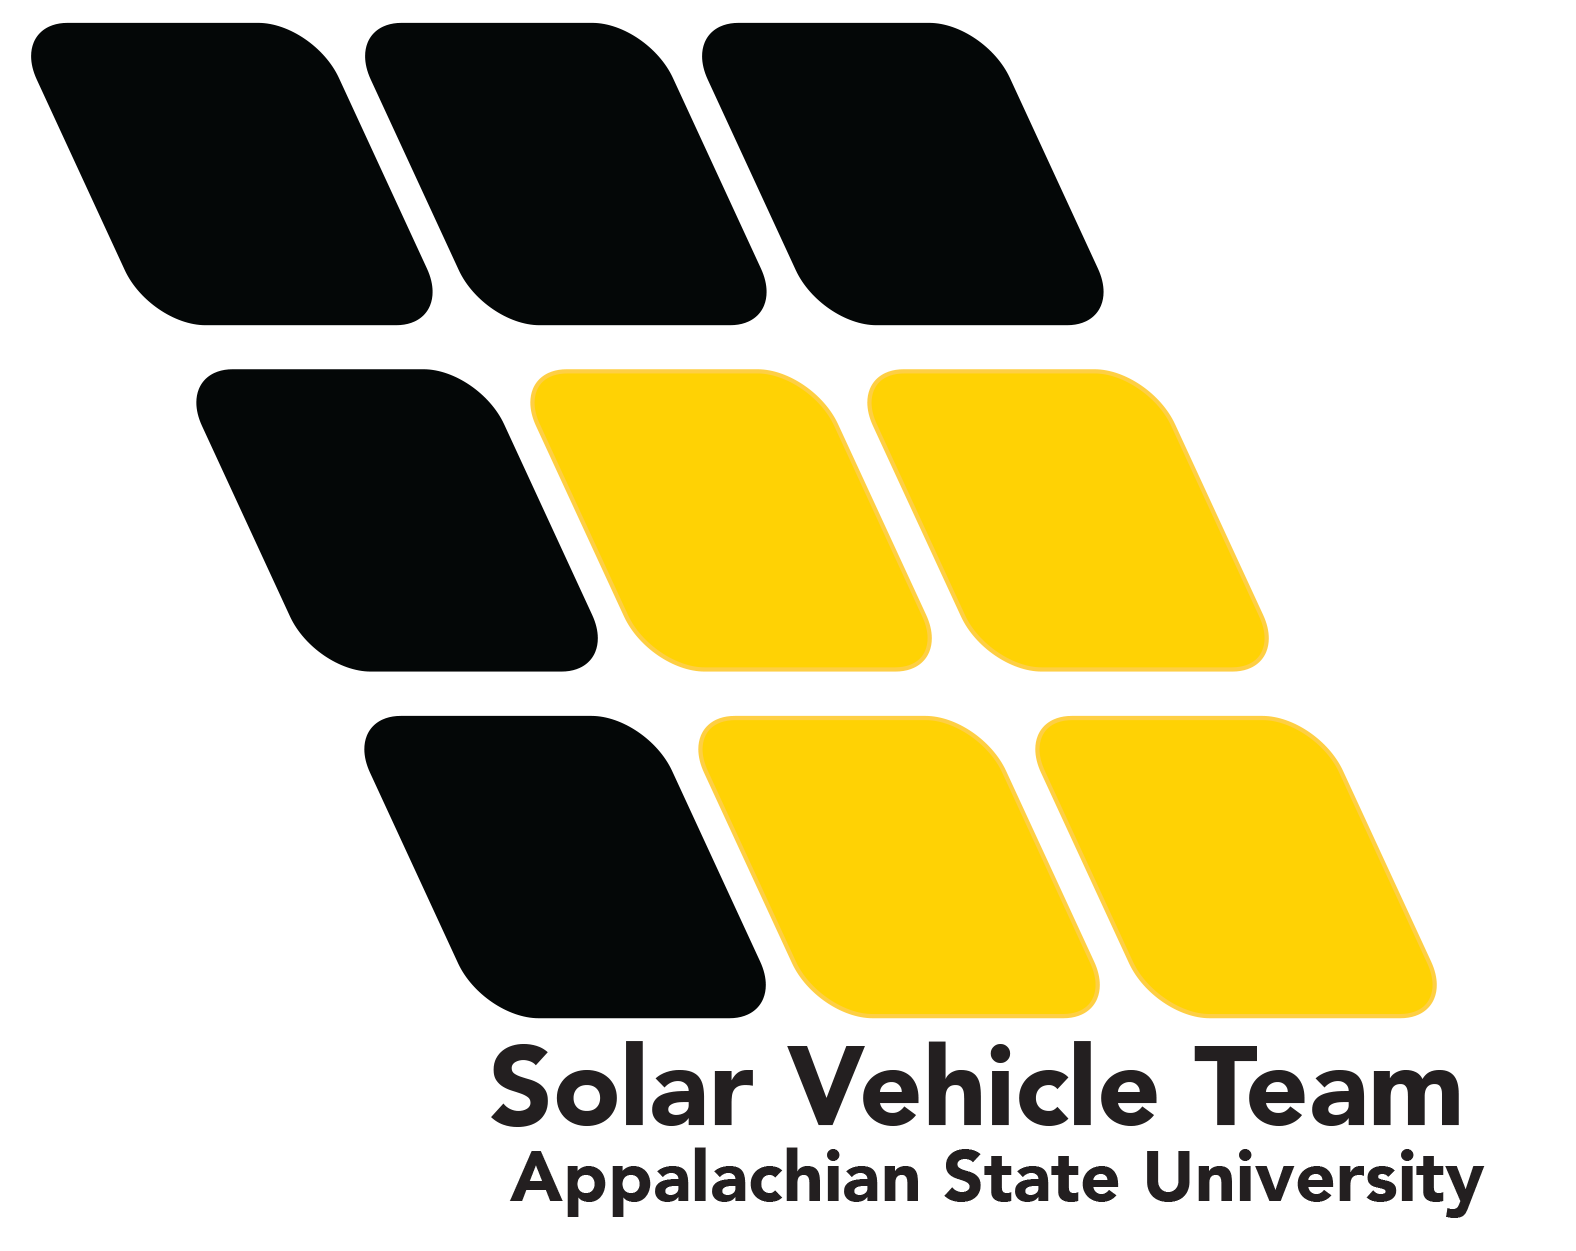 Sponsor Appalachian's Solar Vehicle Team